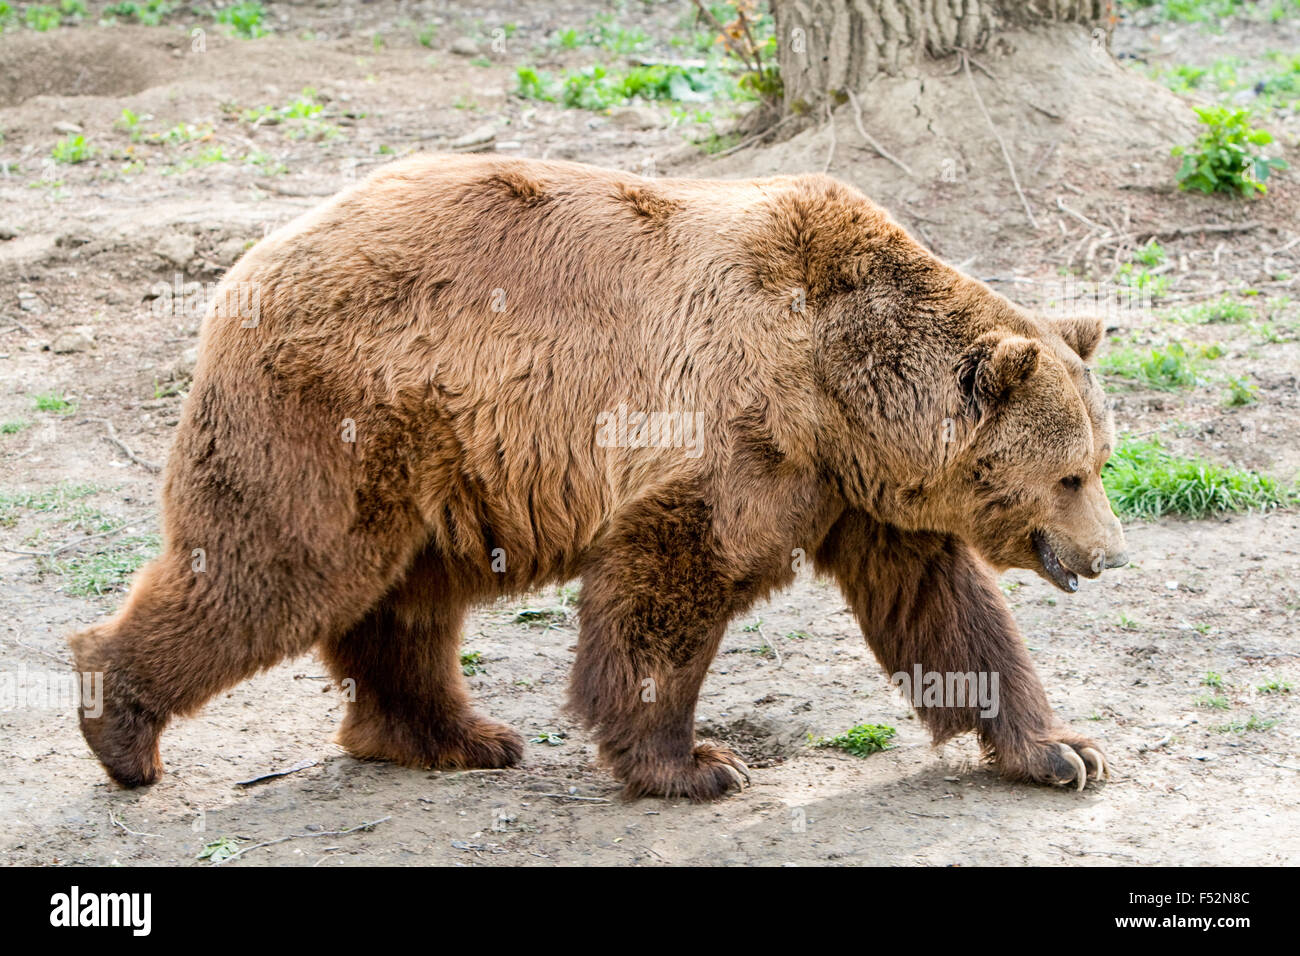 The Brown Bear Is A Large Bear Distributed Across Much Of Northern Eurasia And North America It Weighs 70 To 780 - Stock Image